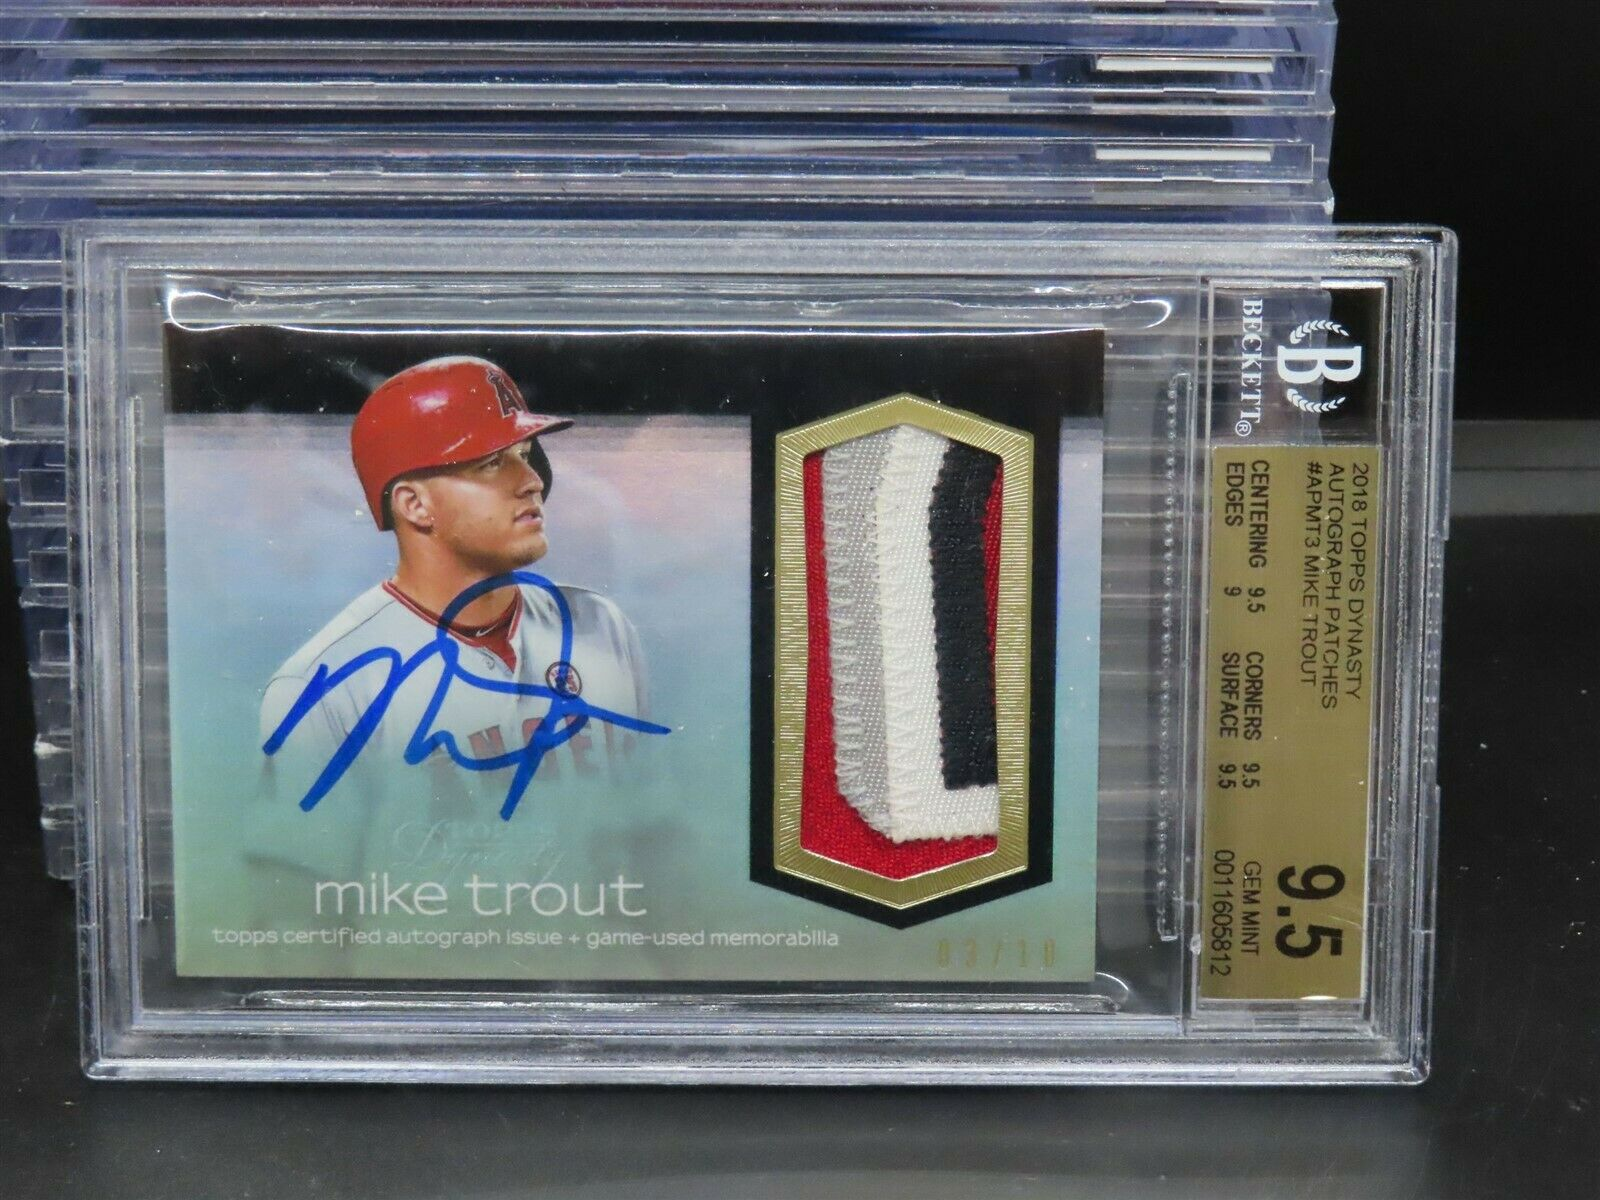 2018 Topps Dynasty Mike Trout GU Patch Auto Autograph #3/10 BGS 9.5/10 M581 - Image 1